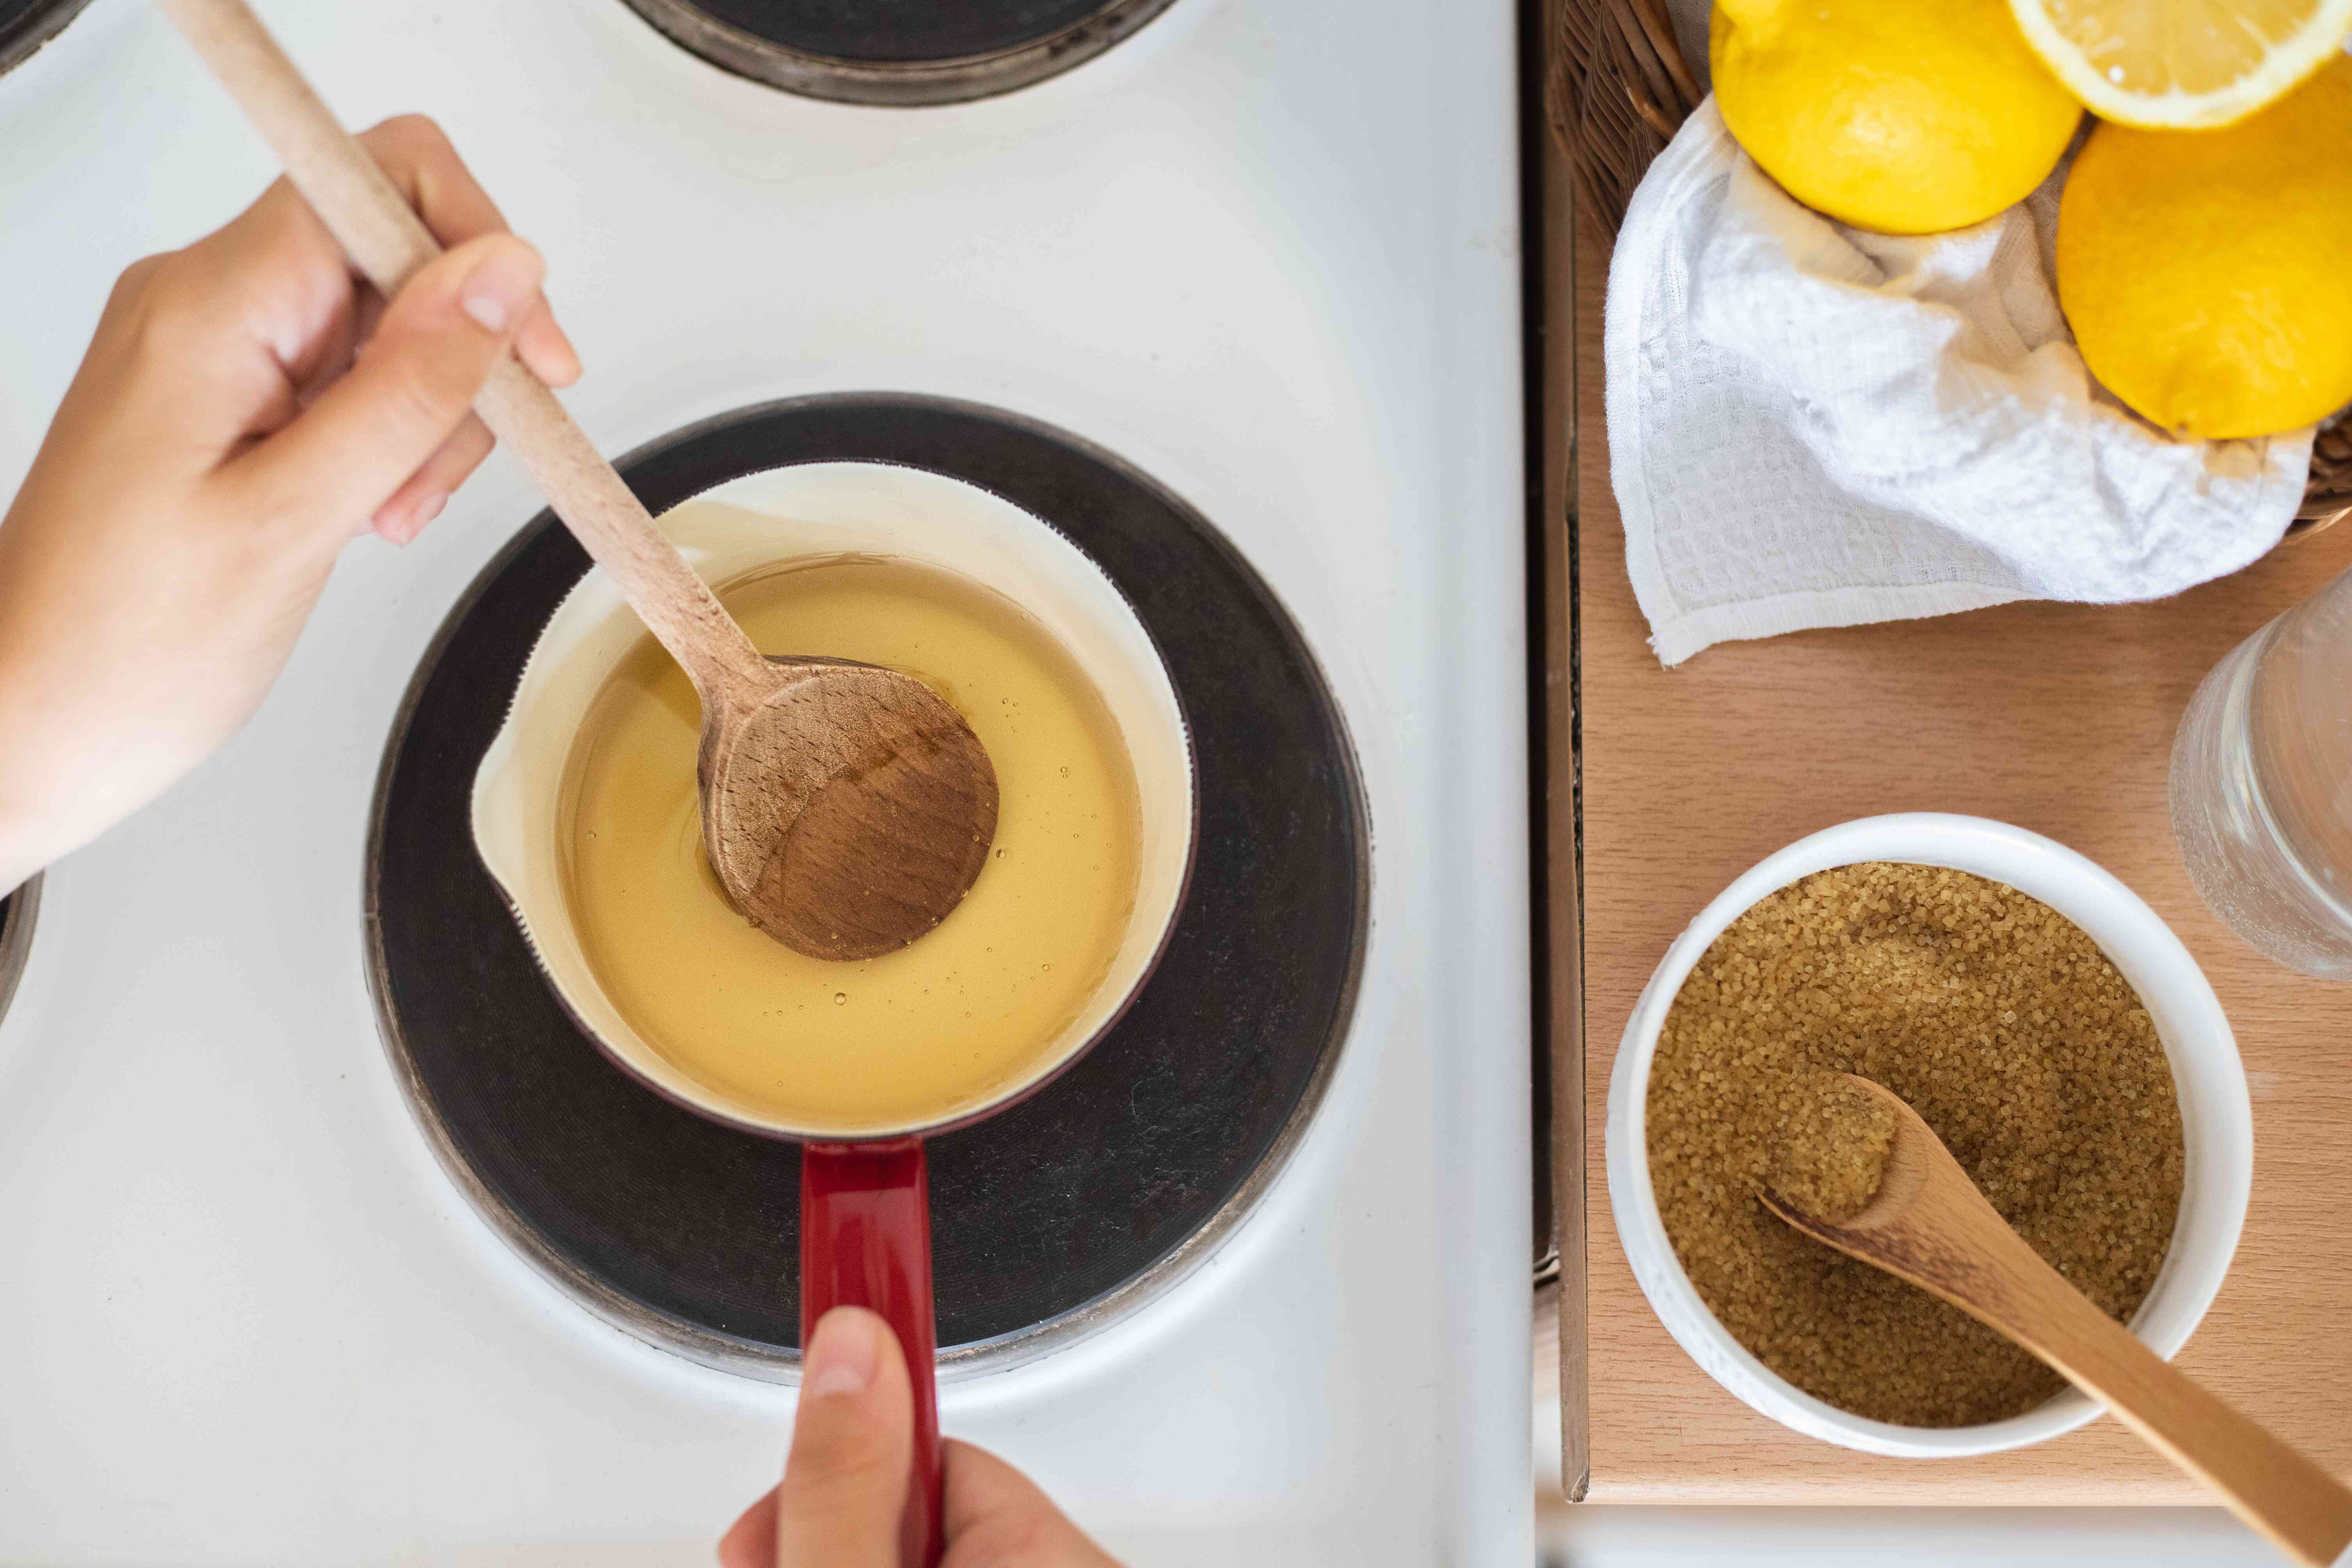 person heats brown sugar on stove with lemon to create homemade sugaring wax